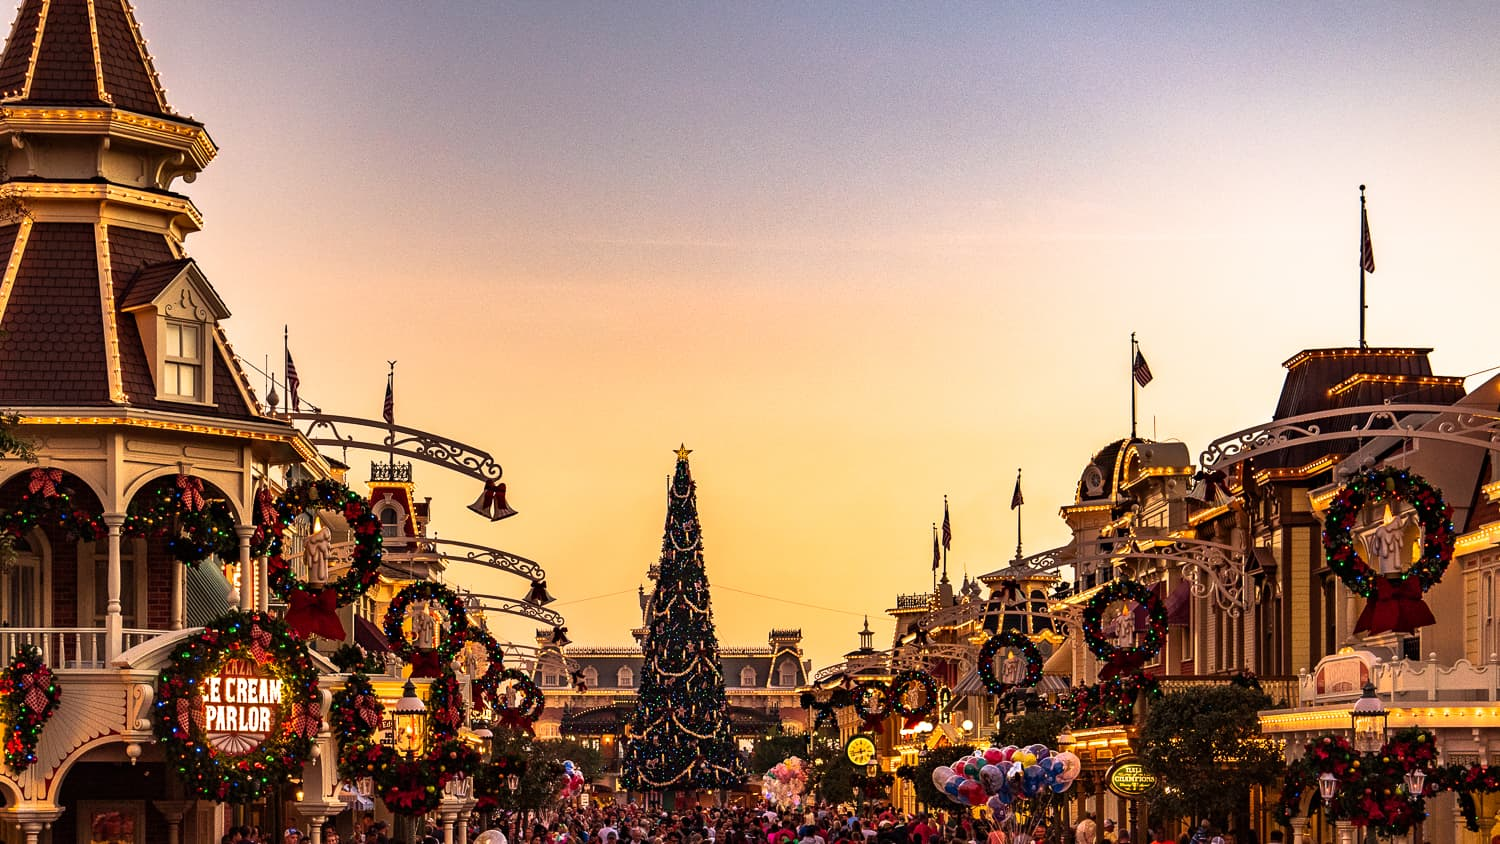 Christmas time on Mainstreet USA at Disney's Magic Kingdom in Orlando, Florida.